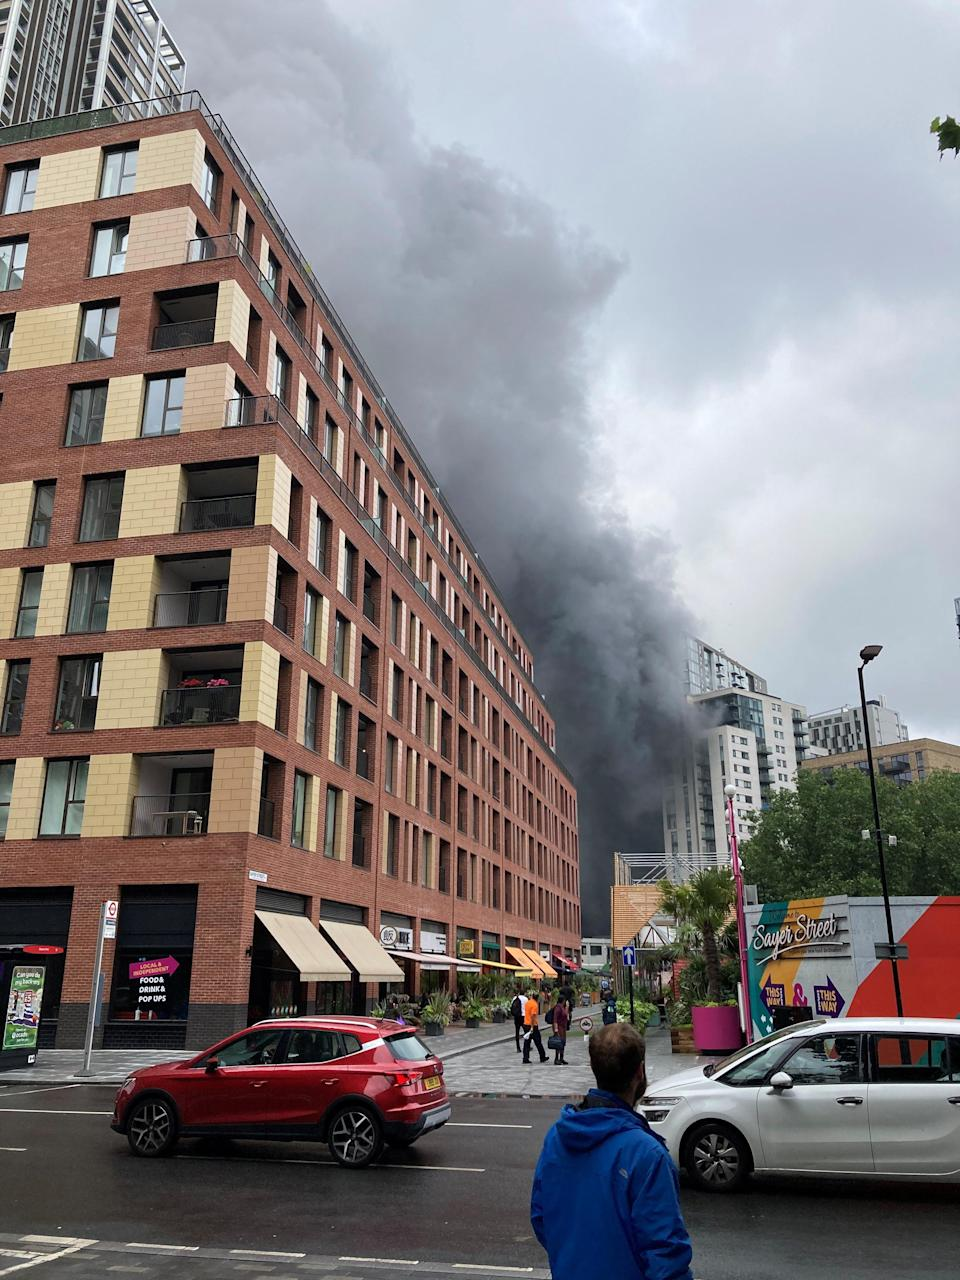 Southwark Playhouse have offered to take anyone in who has been evacuated from the fire (via REUTERS)